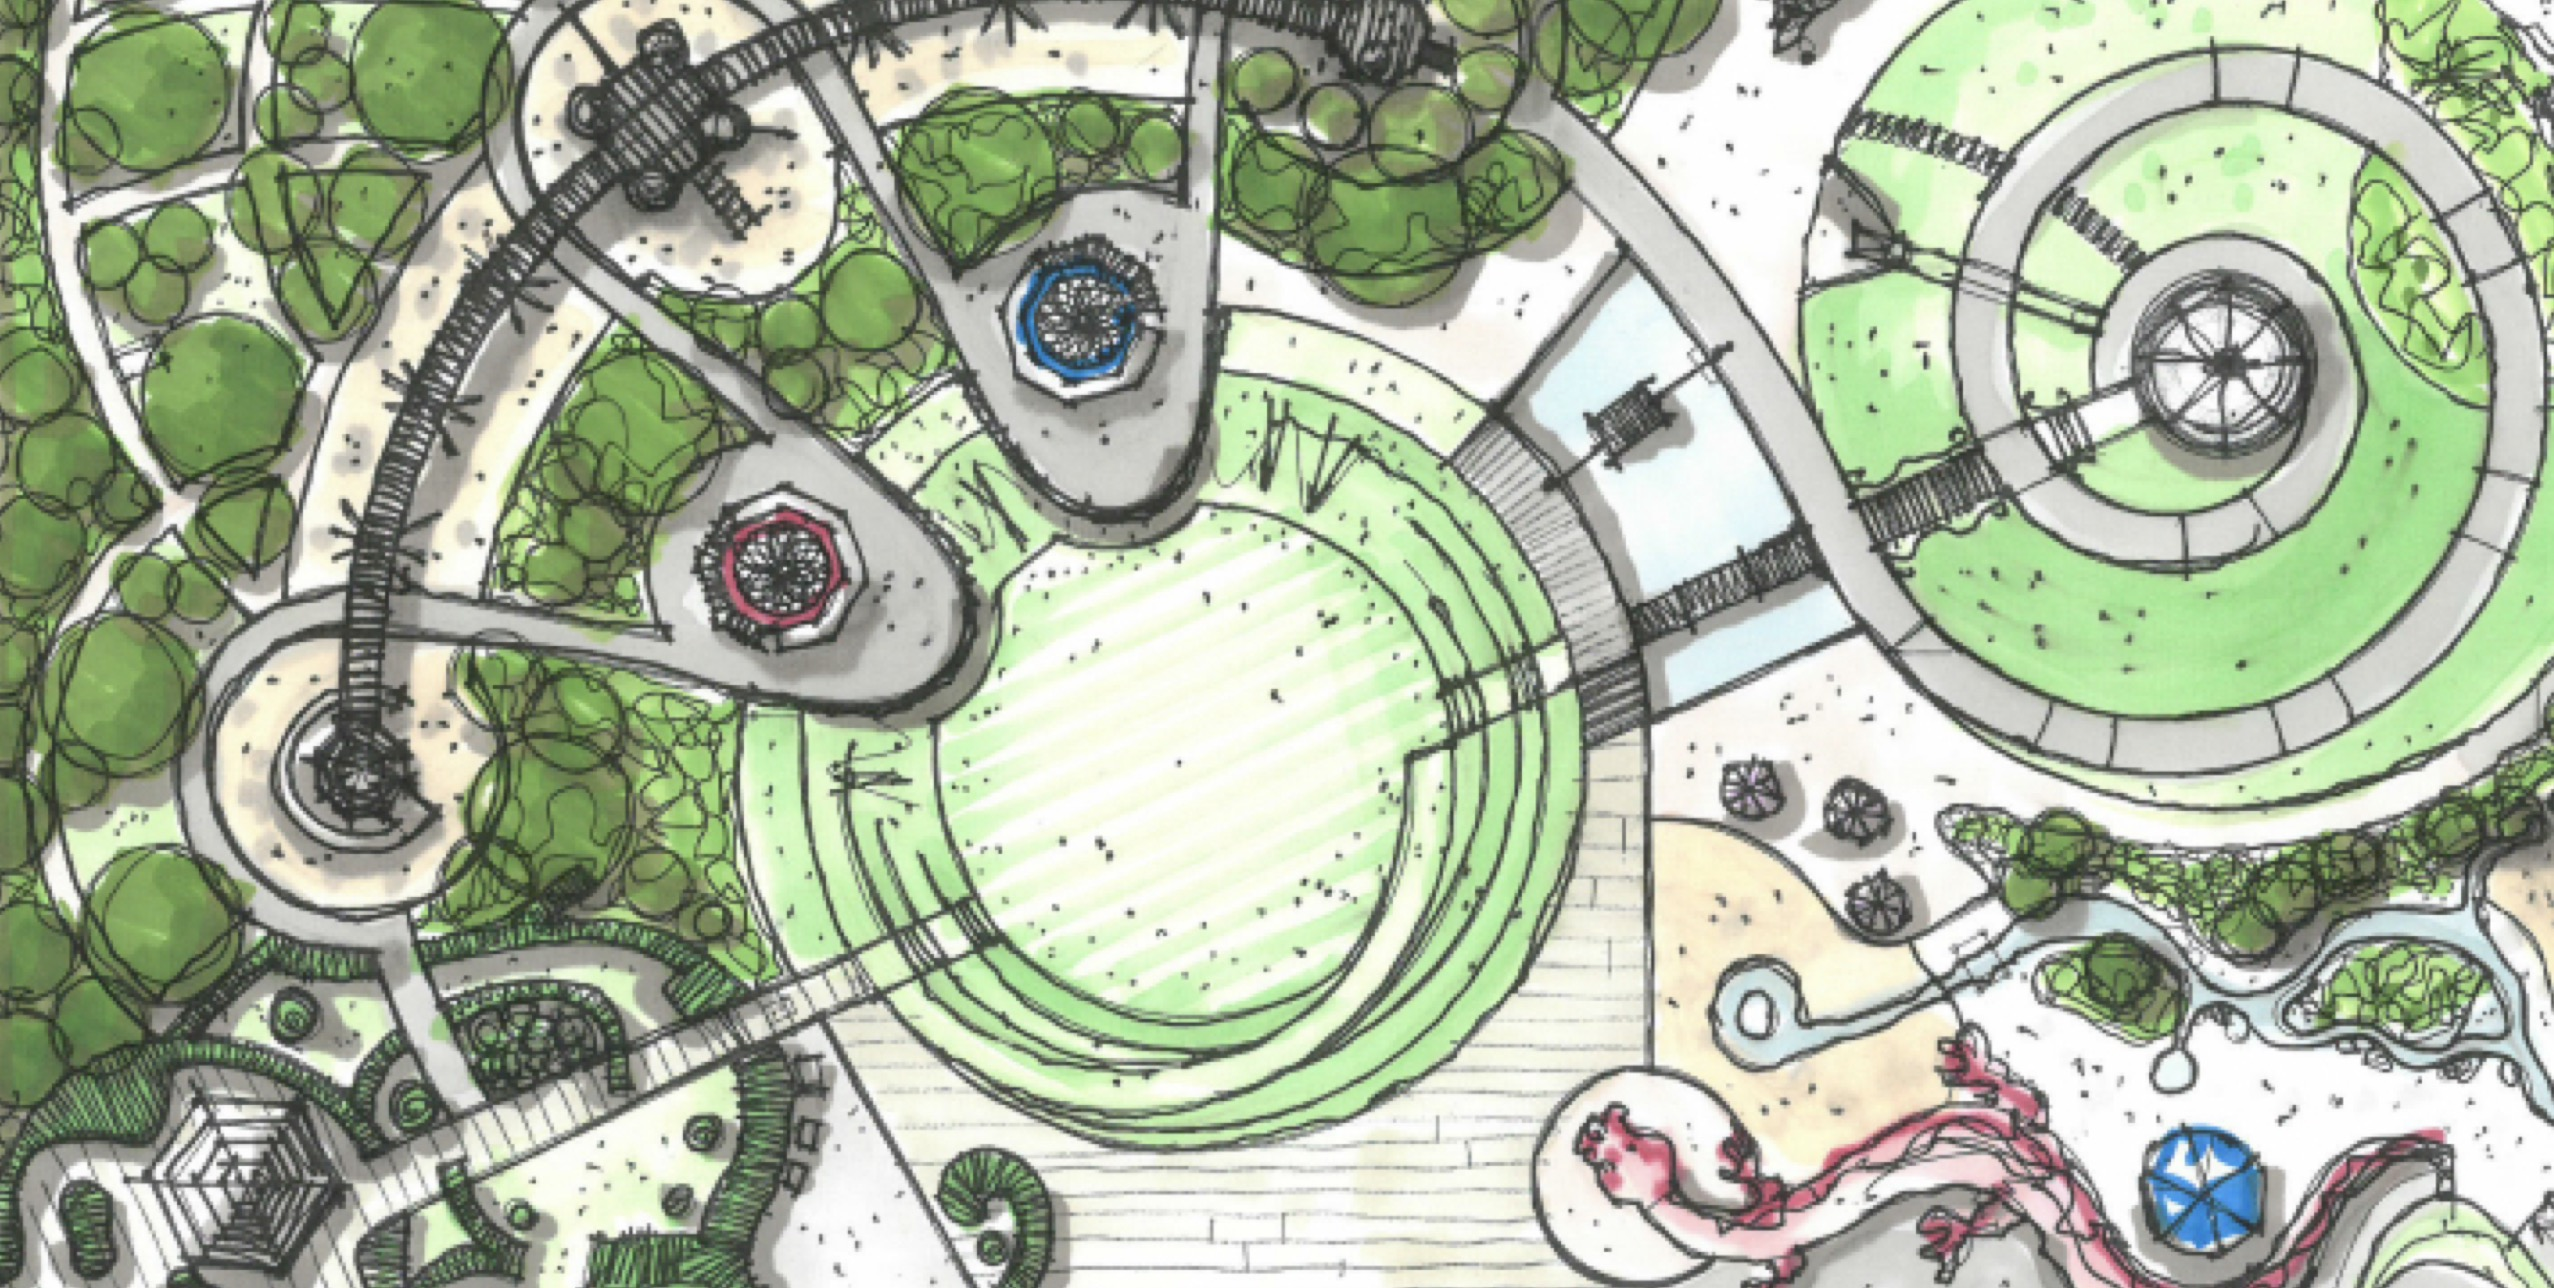 Early sketch of the Magic Garden (detail)